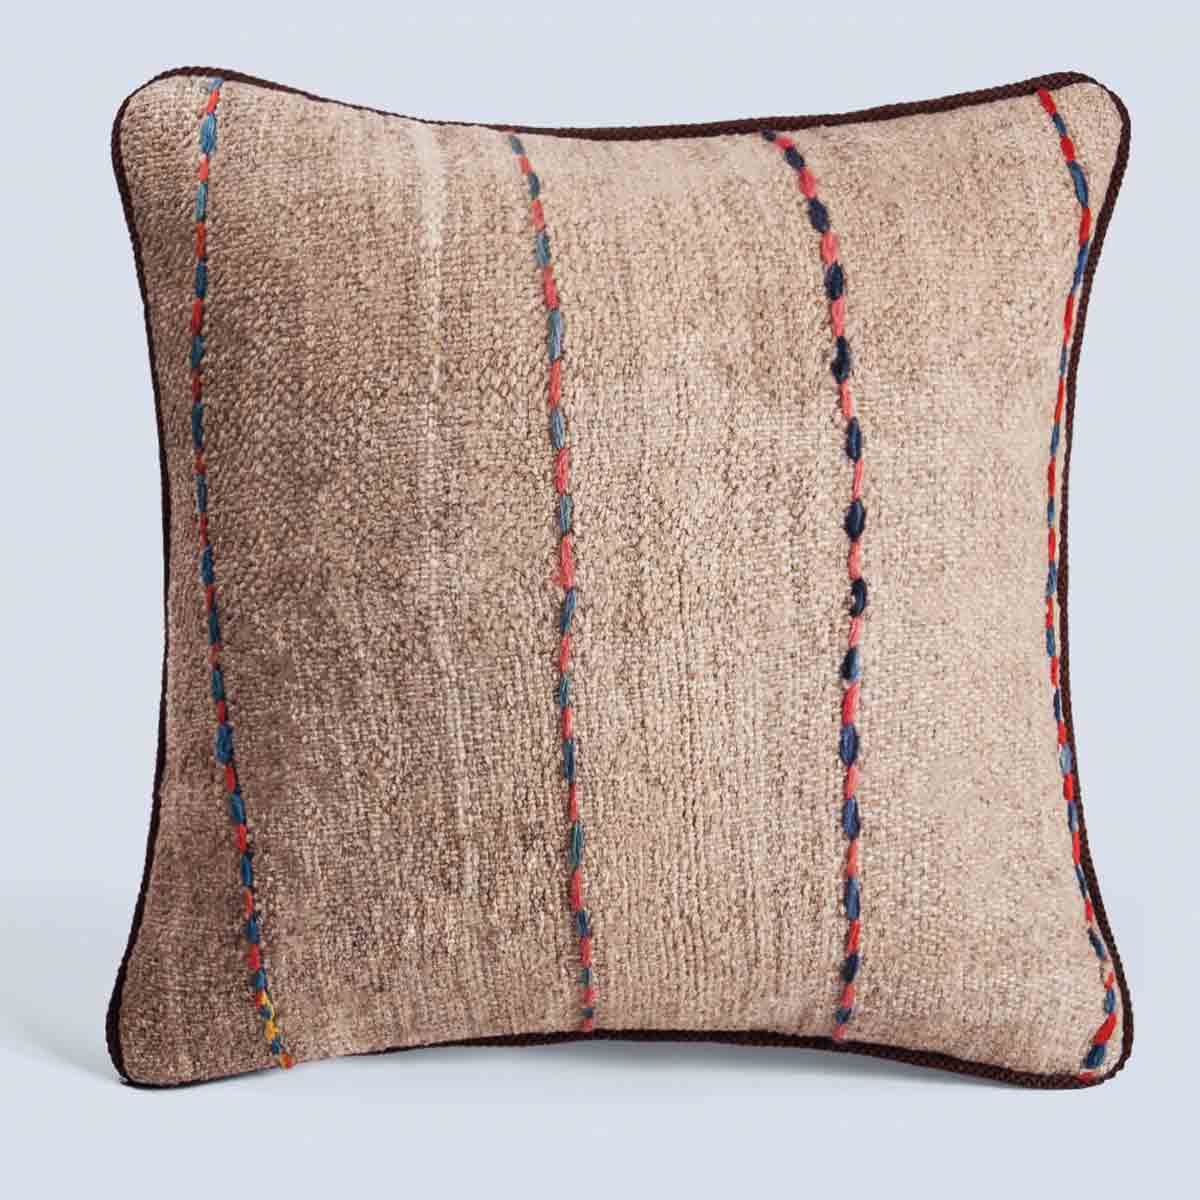 Handwoven Vintage Kilim Khaki Square Stripe Cushion